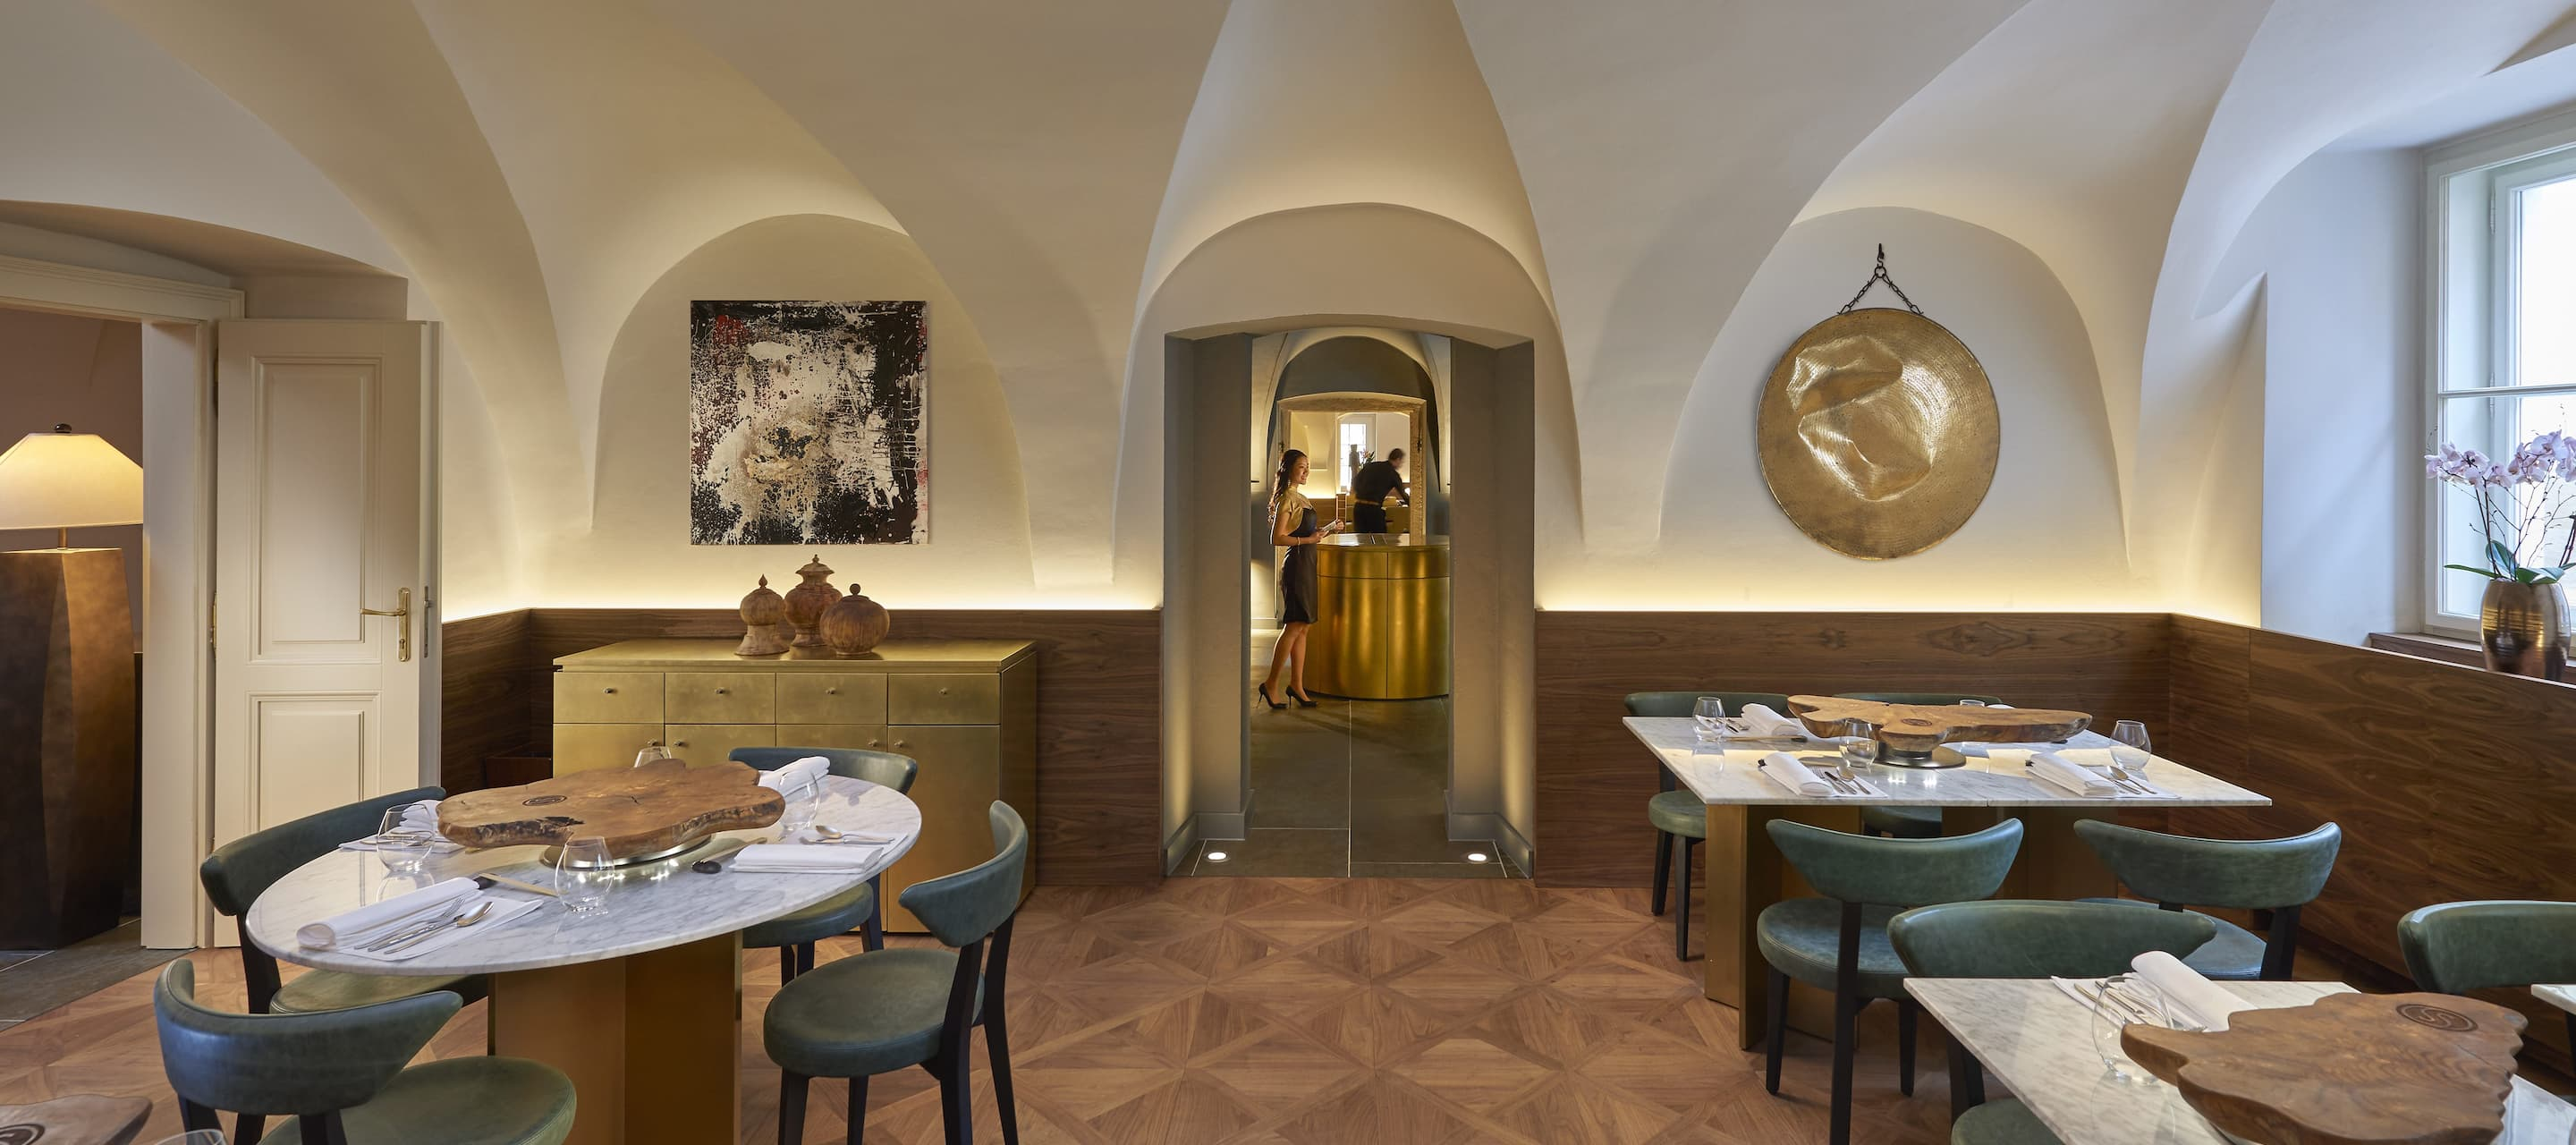 Spices Restaurant And Bar Asian Cuisine In Mala Strana